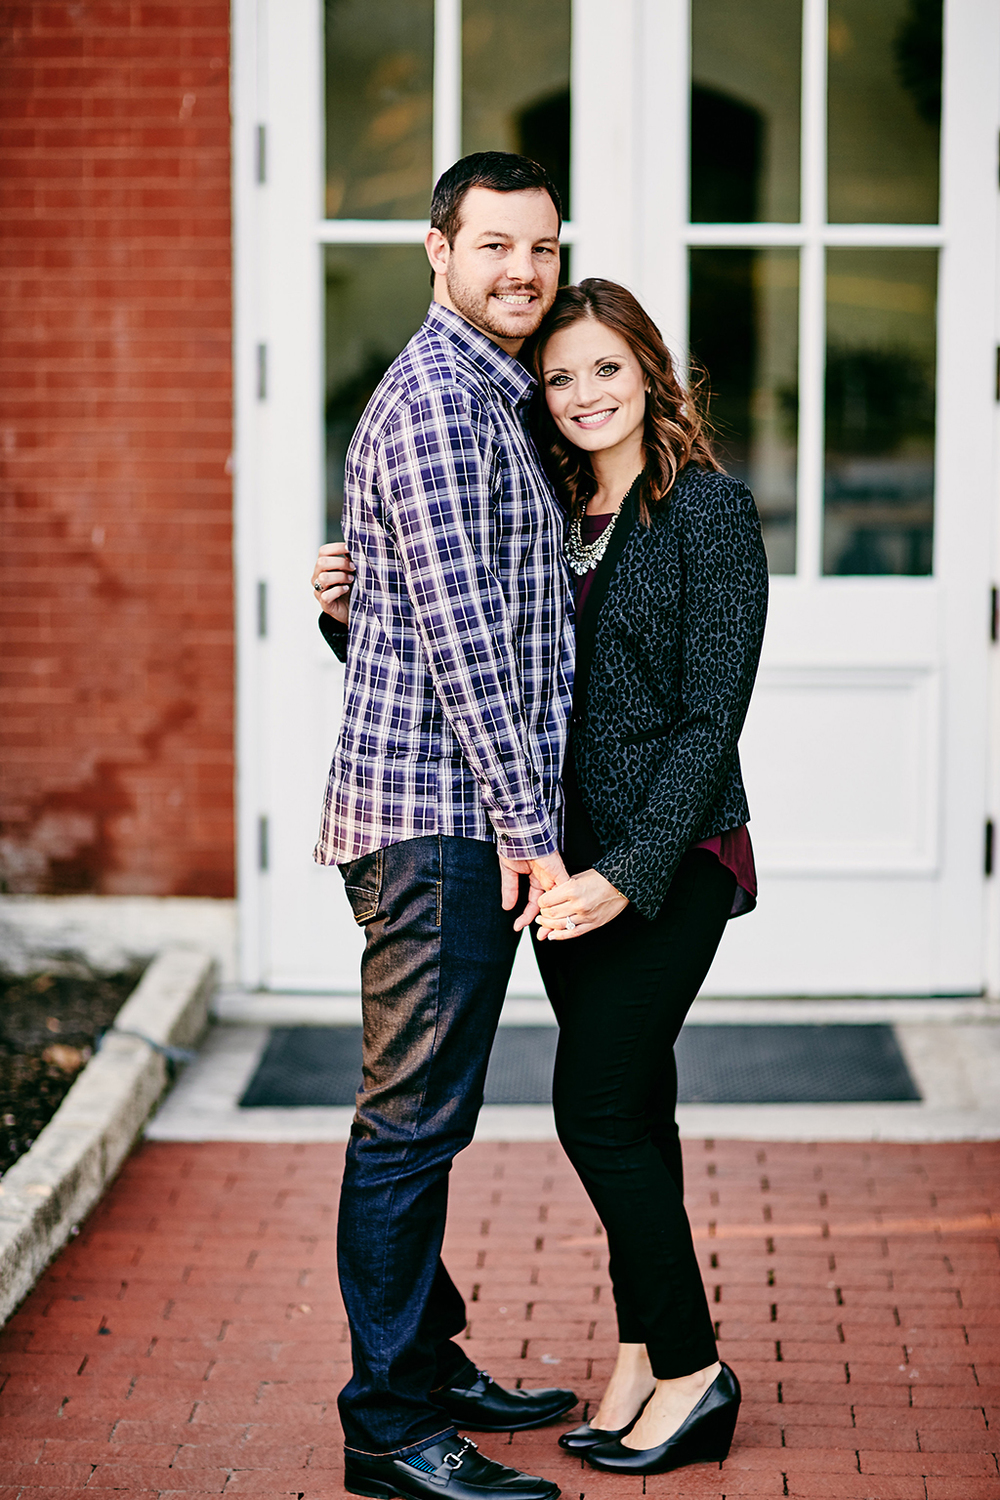 Tower Grove Park / St. Louis Engagement Photos by St. Louis Wedding Photographers Oldani Photography